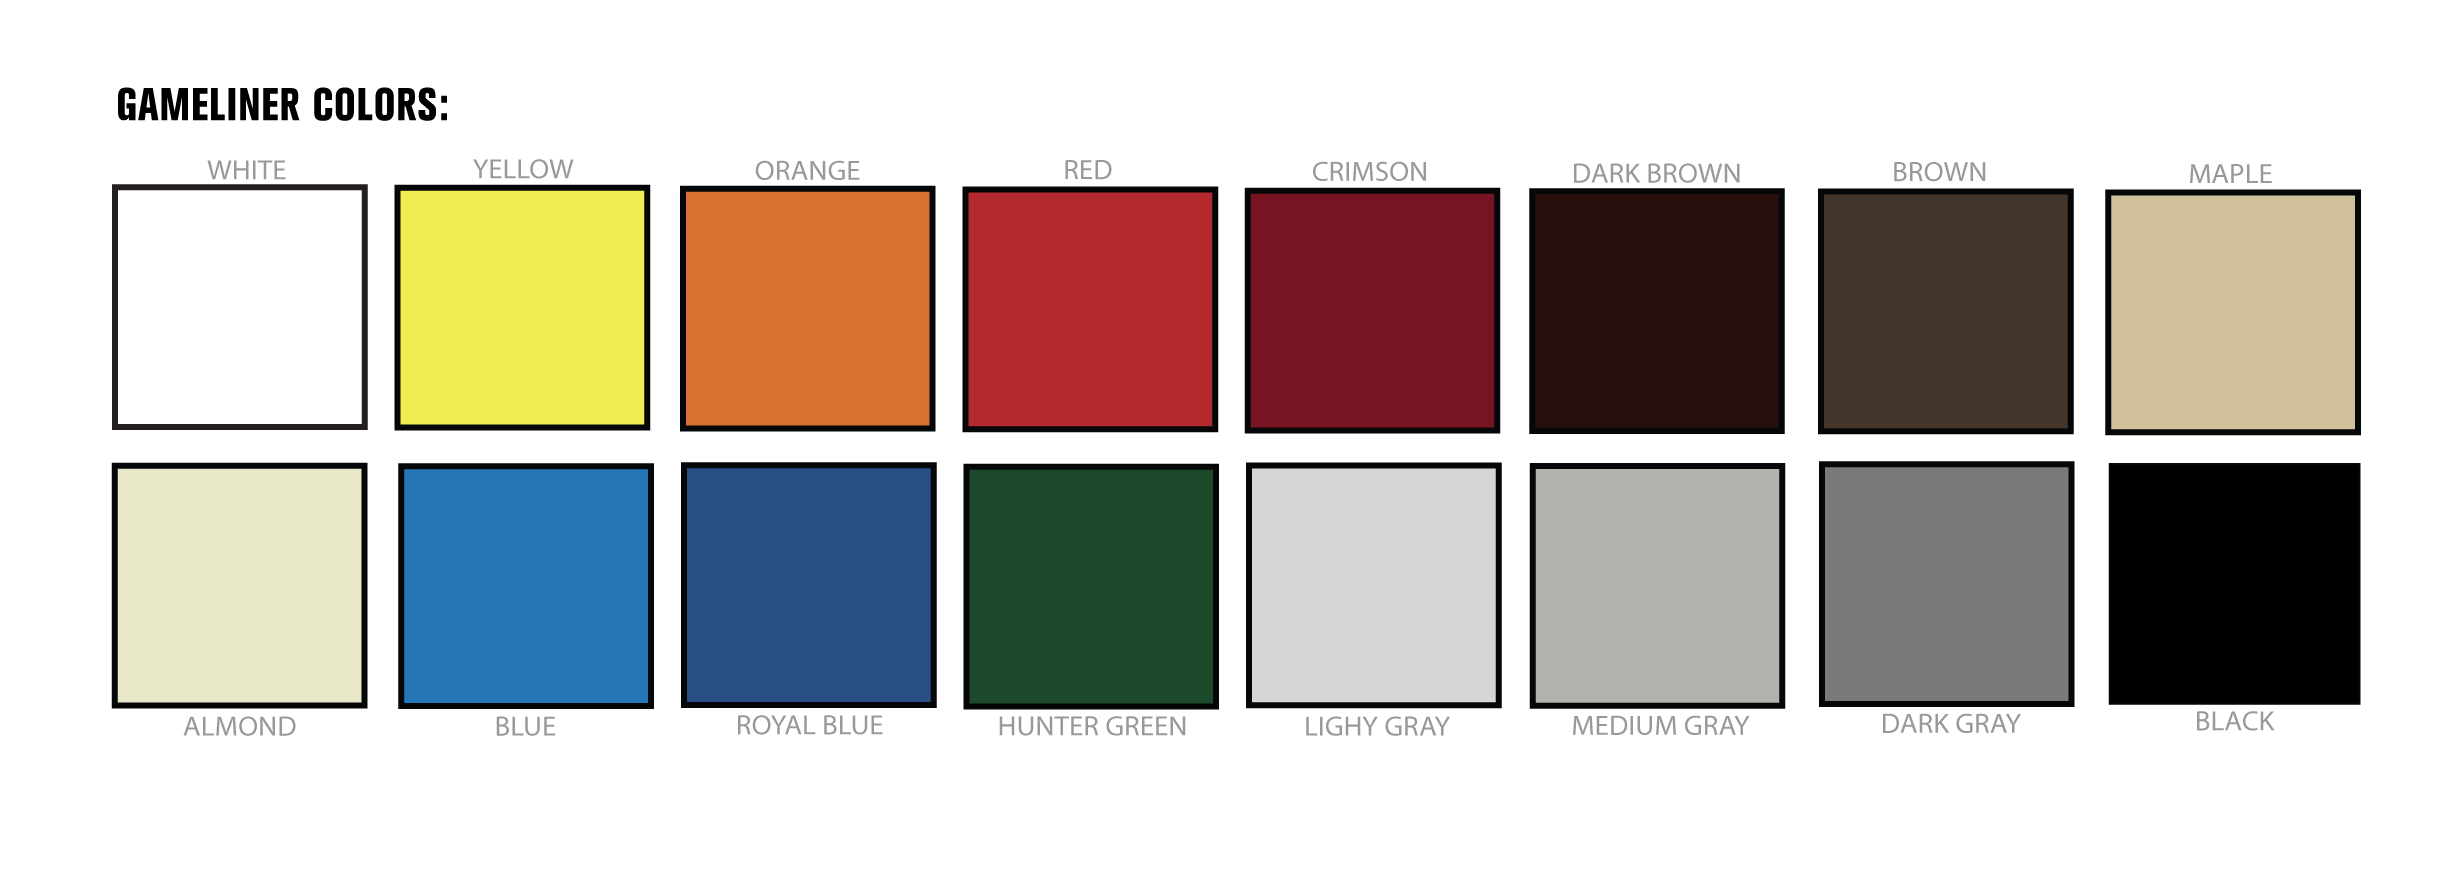 GAMELINER BASKETBALL COURT FLOOR PAINT COLOR CHOICES